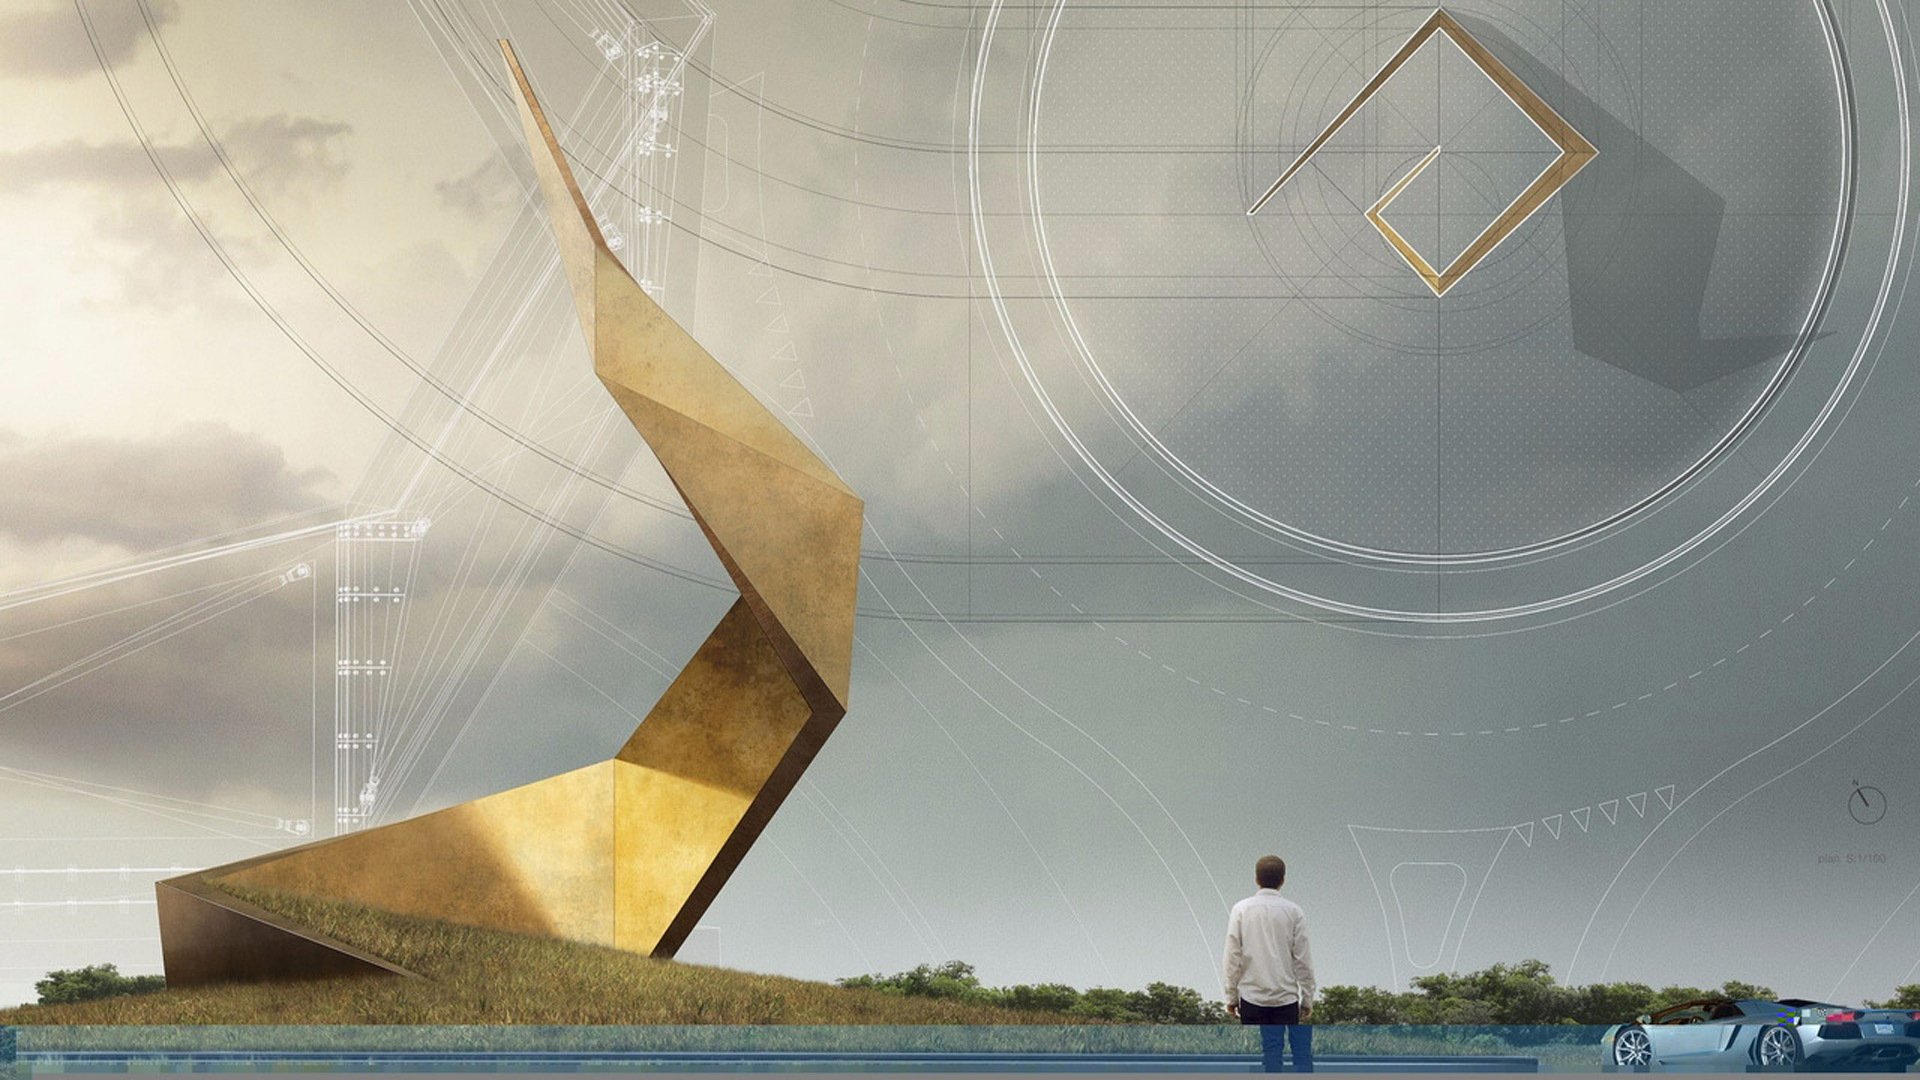 Concept drawing of sculpture to mark Lamborghini's home in Sant'Agata Bolognese, Italy